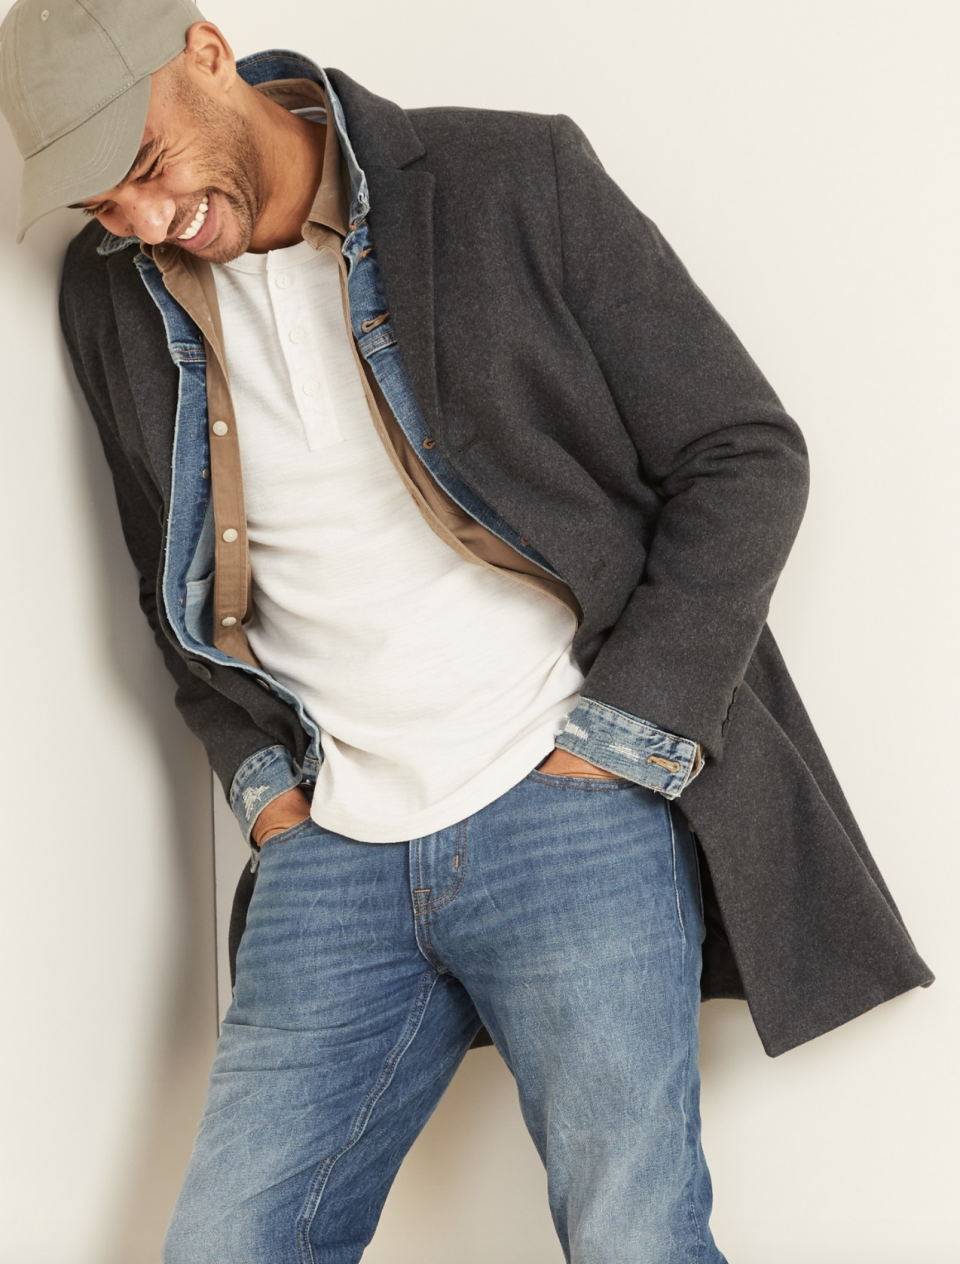 Soft-Brushed Three-Button Topcoat for Men - on sale at Old Navy, $68 (originally $135).